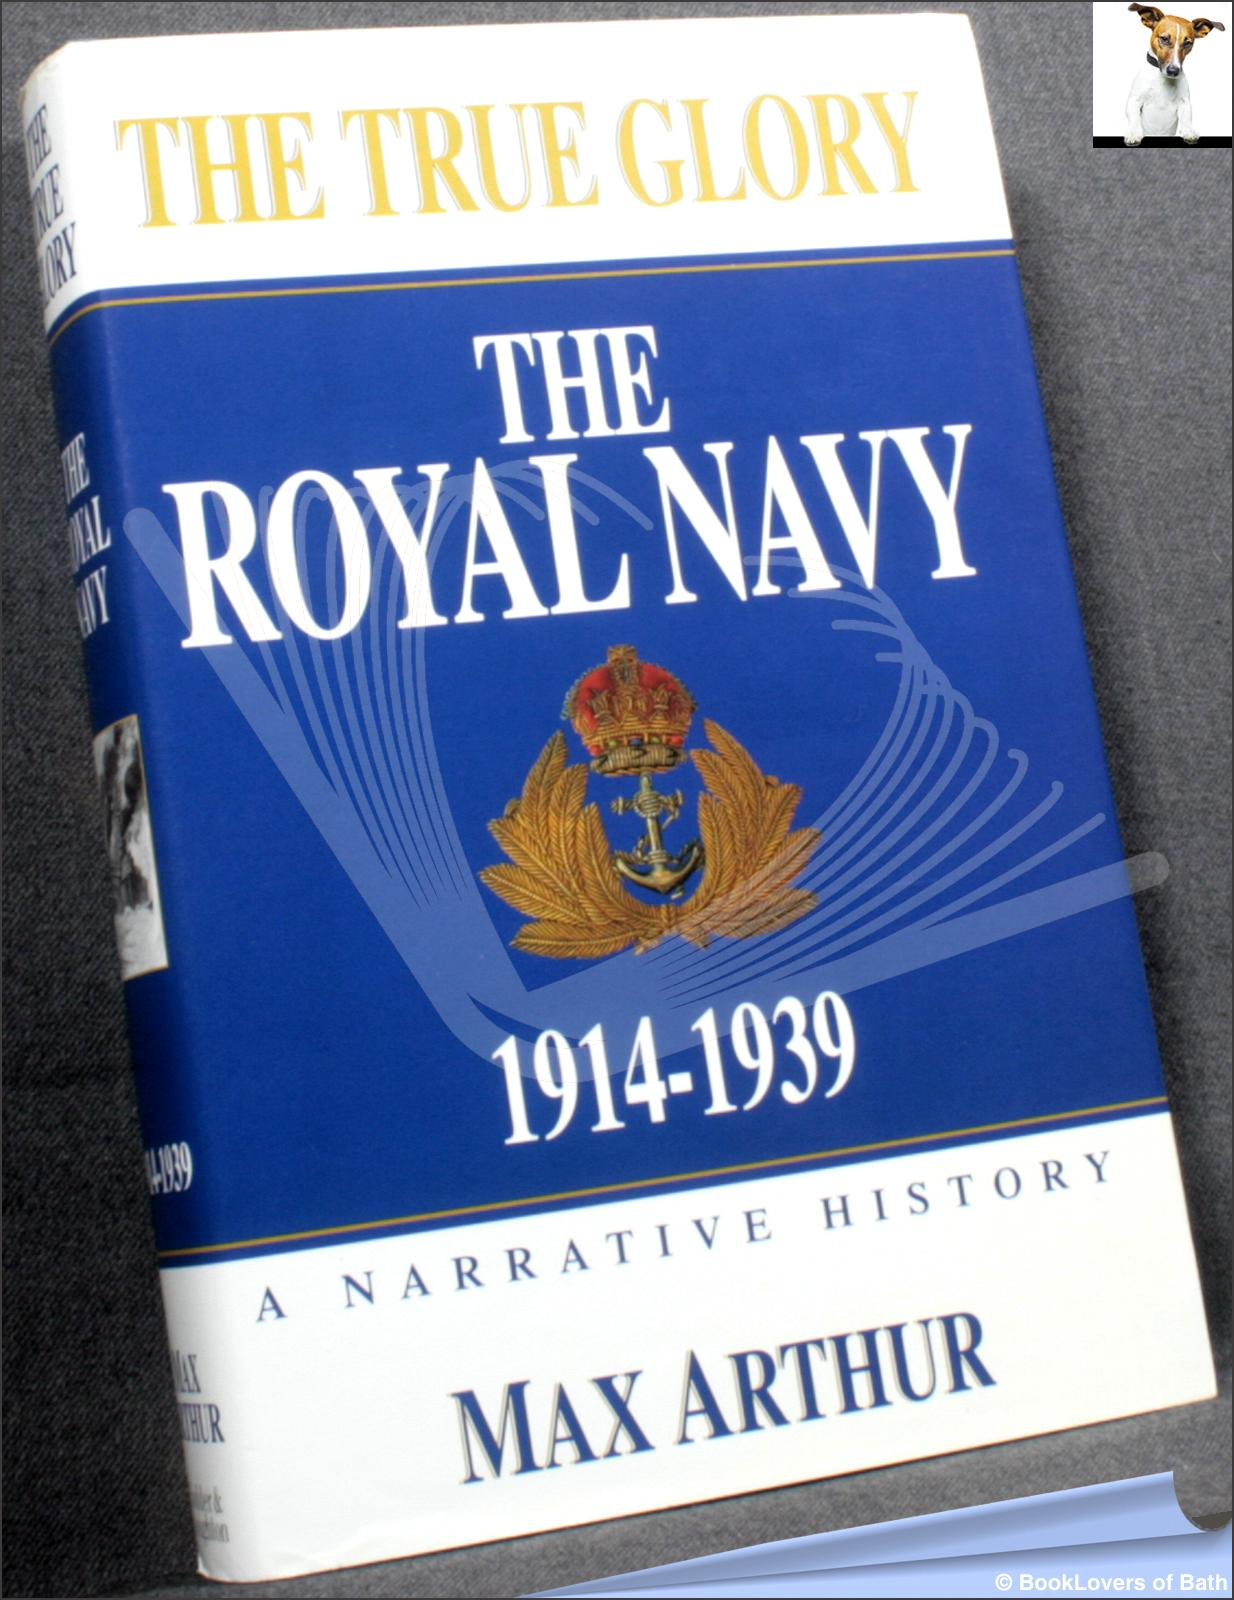 The True Glory: The Royal Navy 1914-1939 - Max Arthur